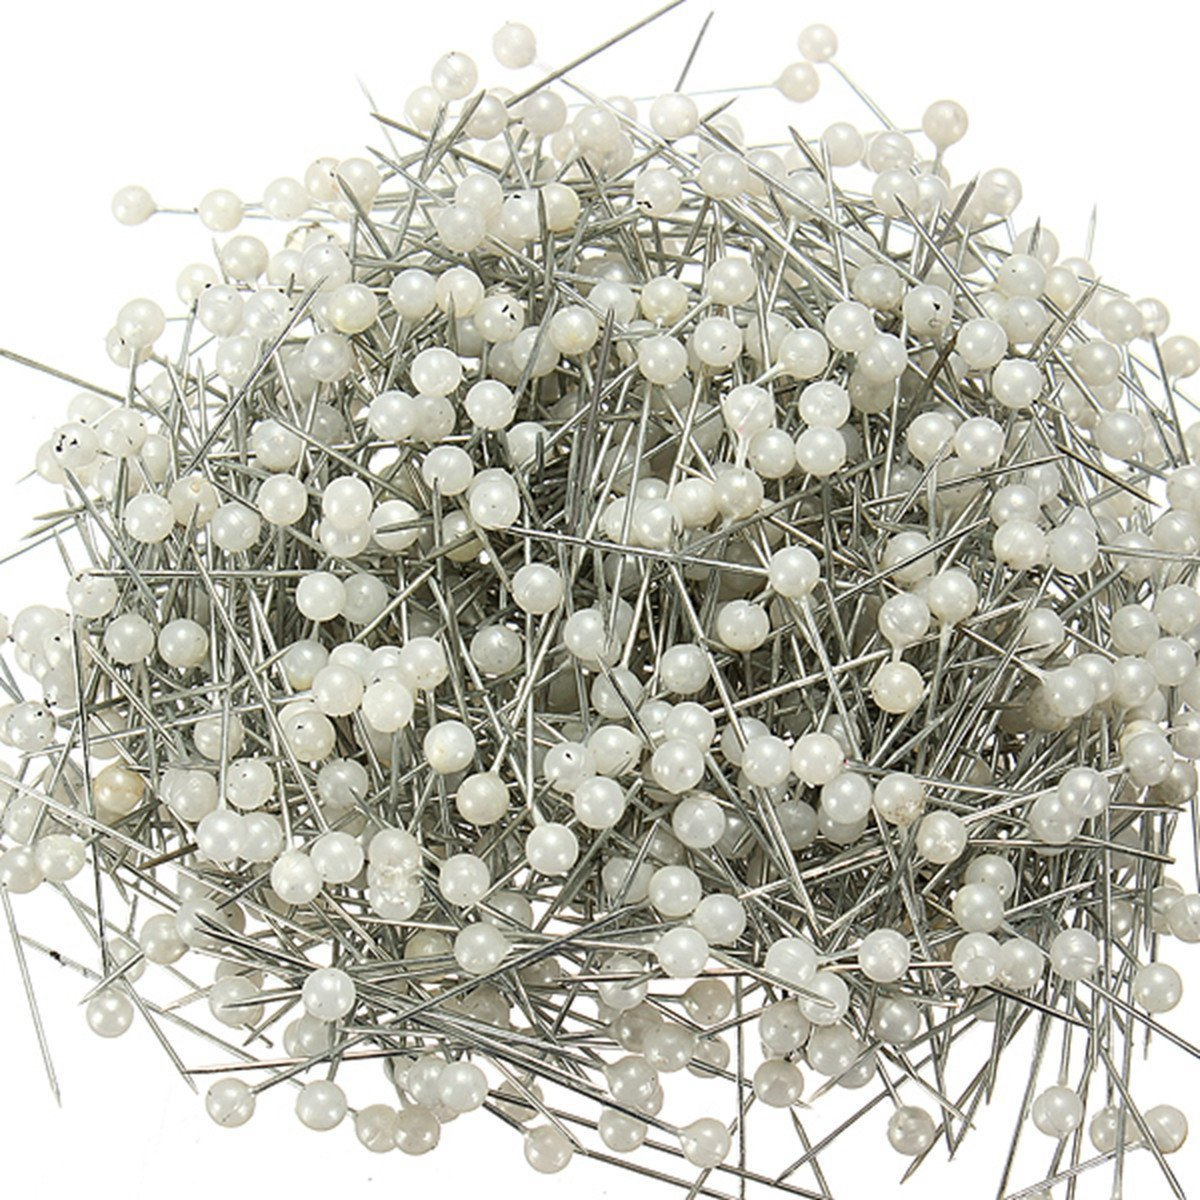 Freedi 480 Pcs Dressmaking Sewing Straight Pins Weddings Corsage Florists Needles with Pearl Round Ball Head White